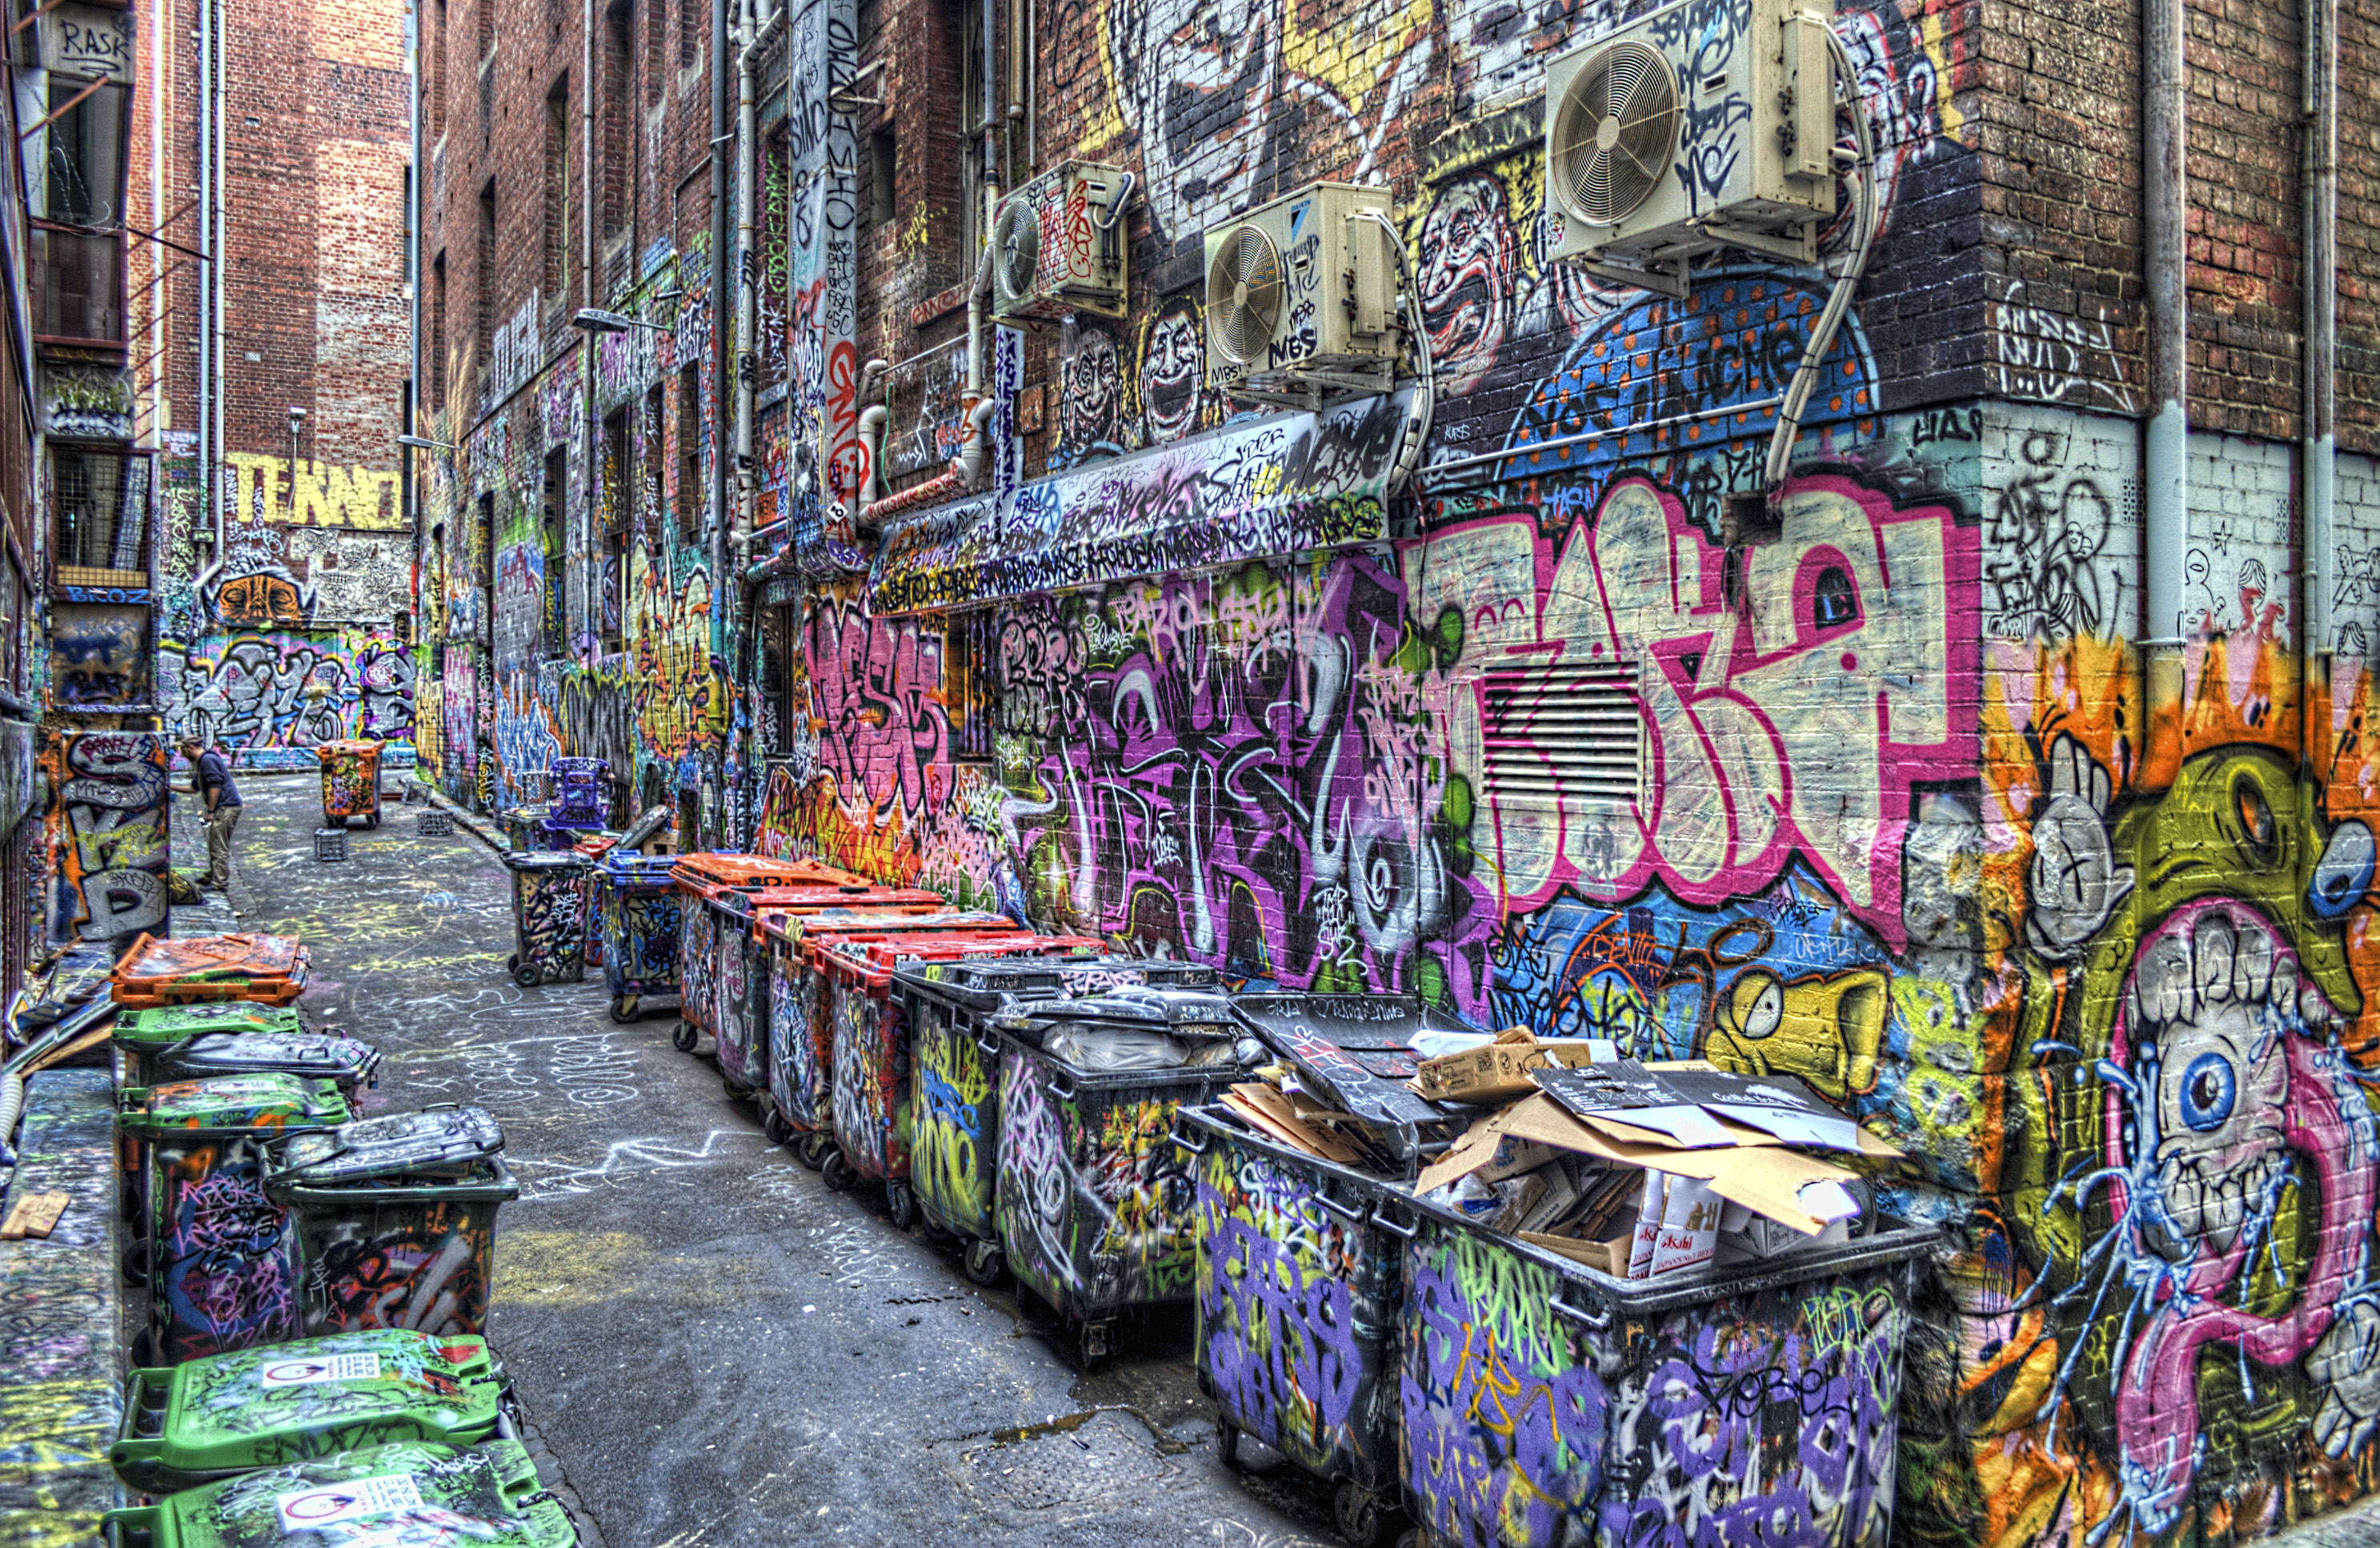 Graffiti wallpapers - Free A14 fonts HD Desktop background images pictures downloads